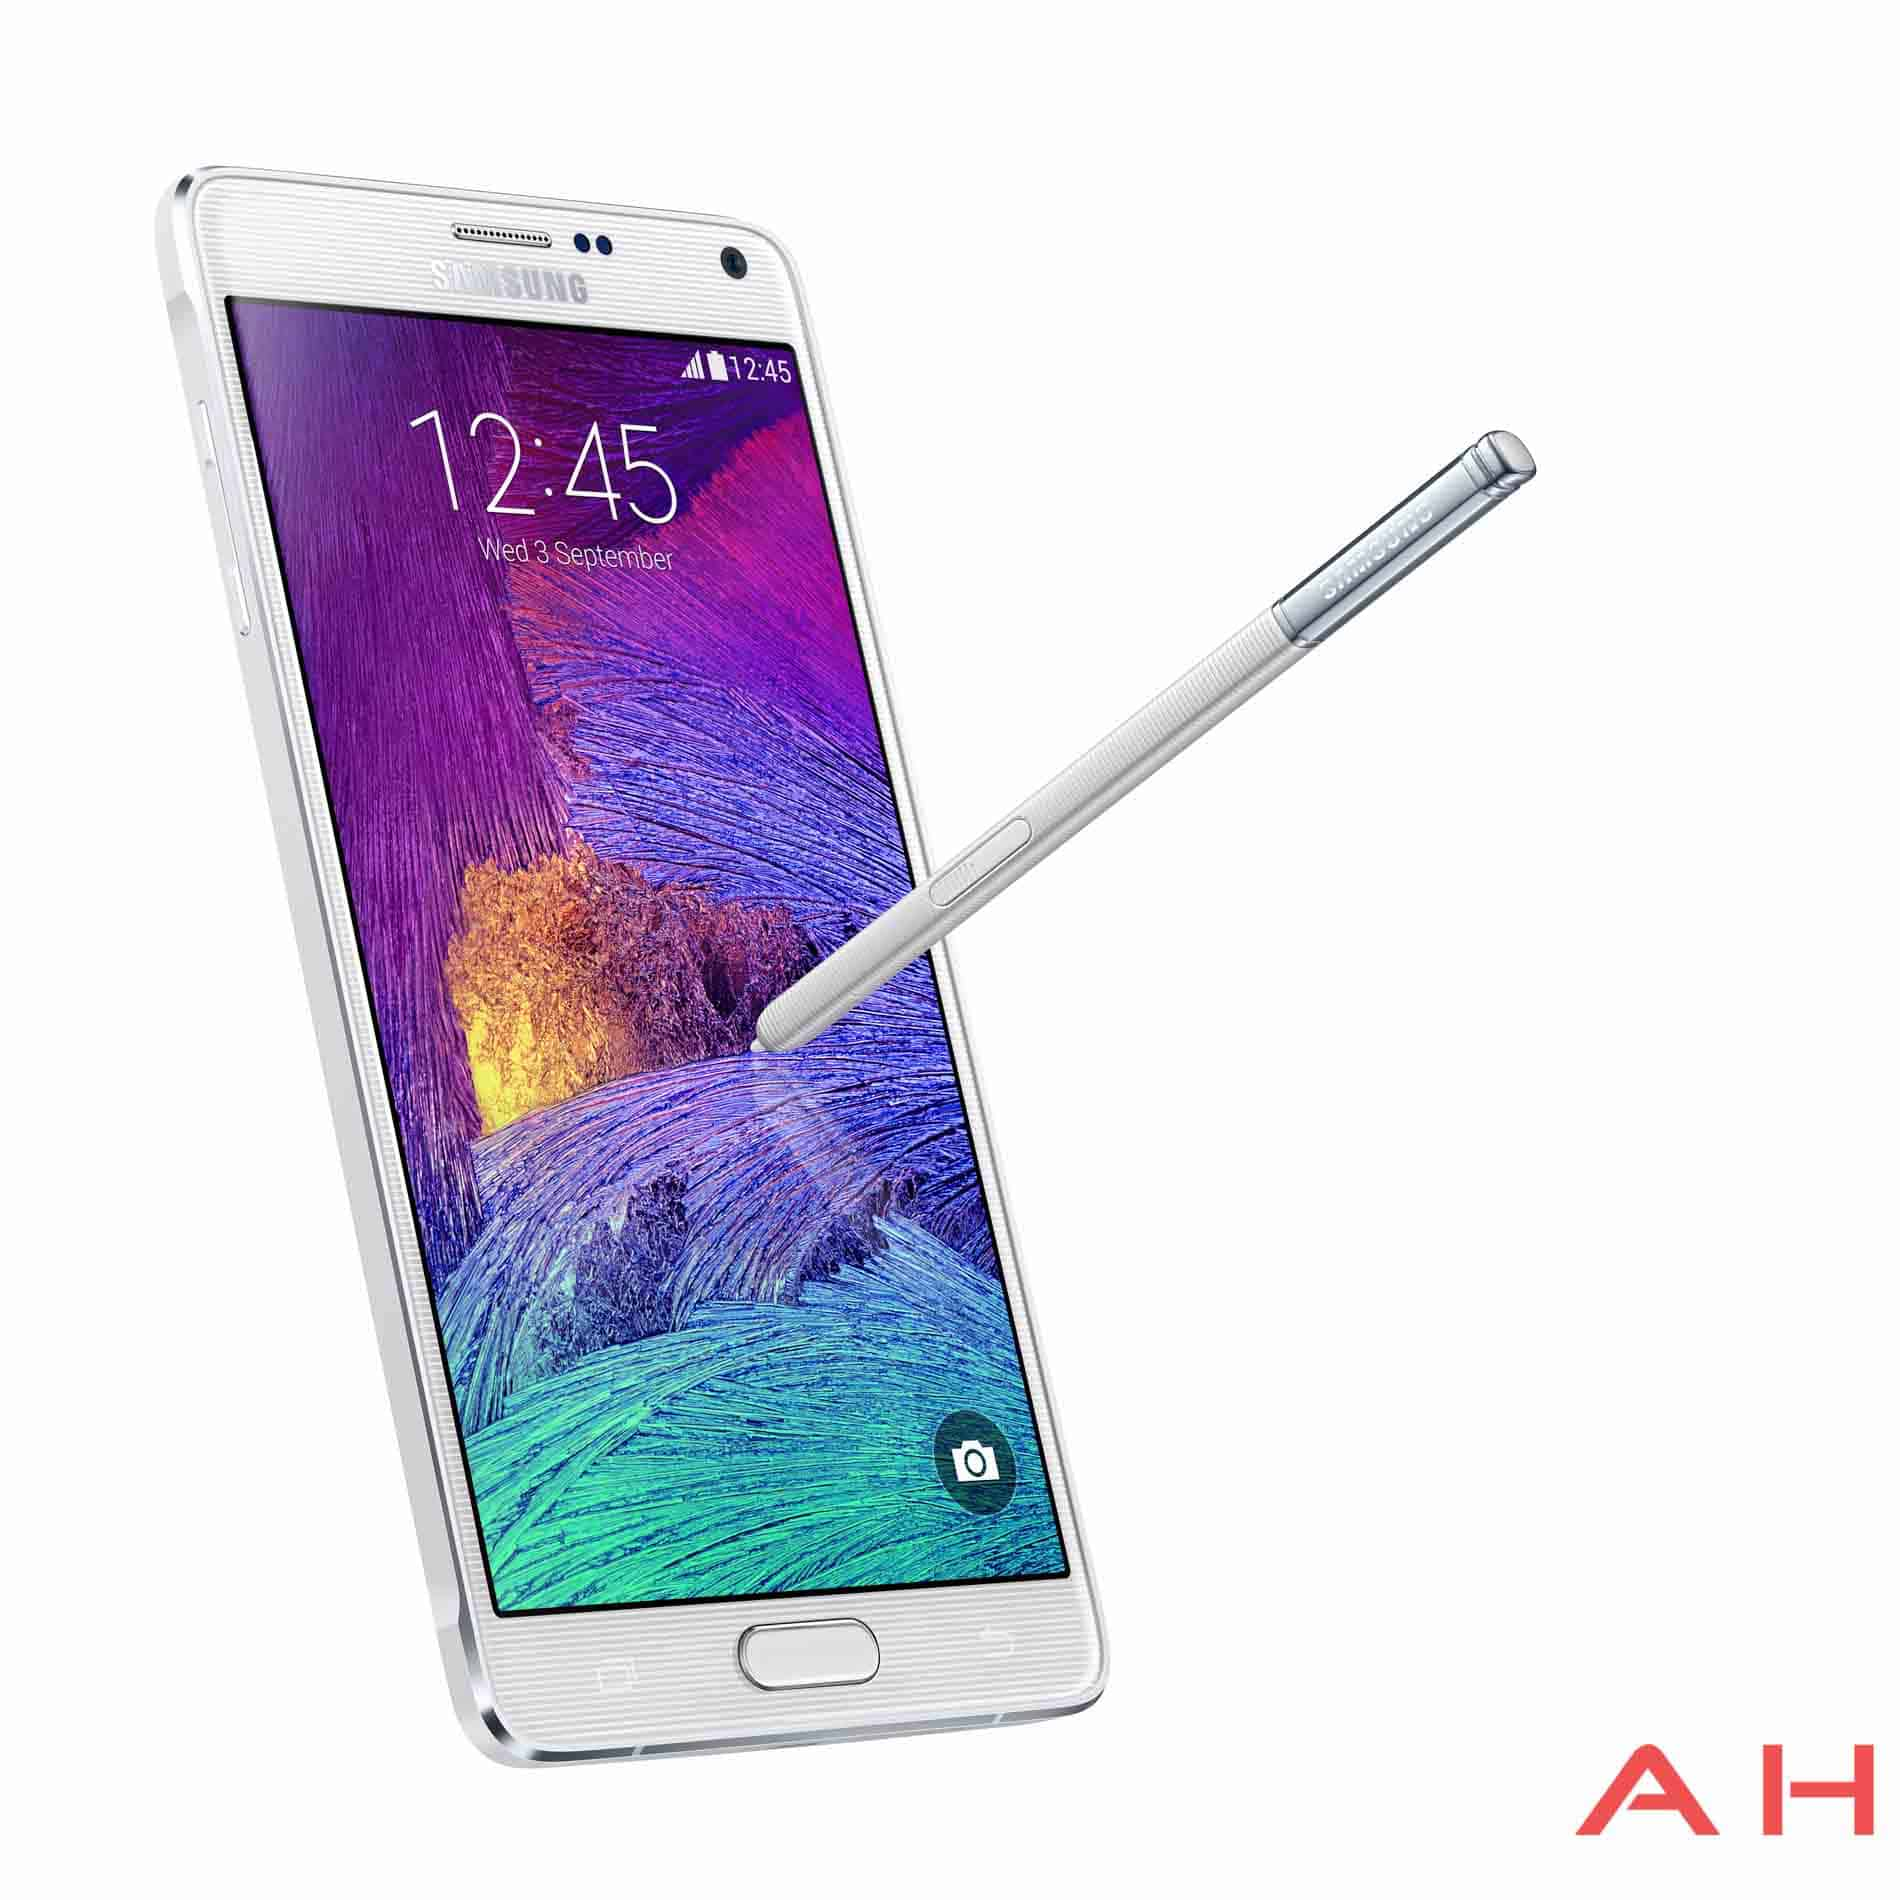 Samsung-Galaxy-Note-4-AH-12